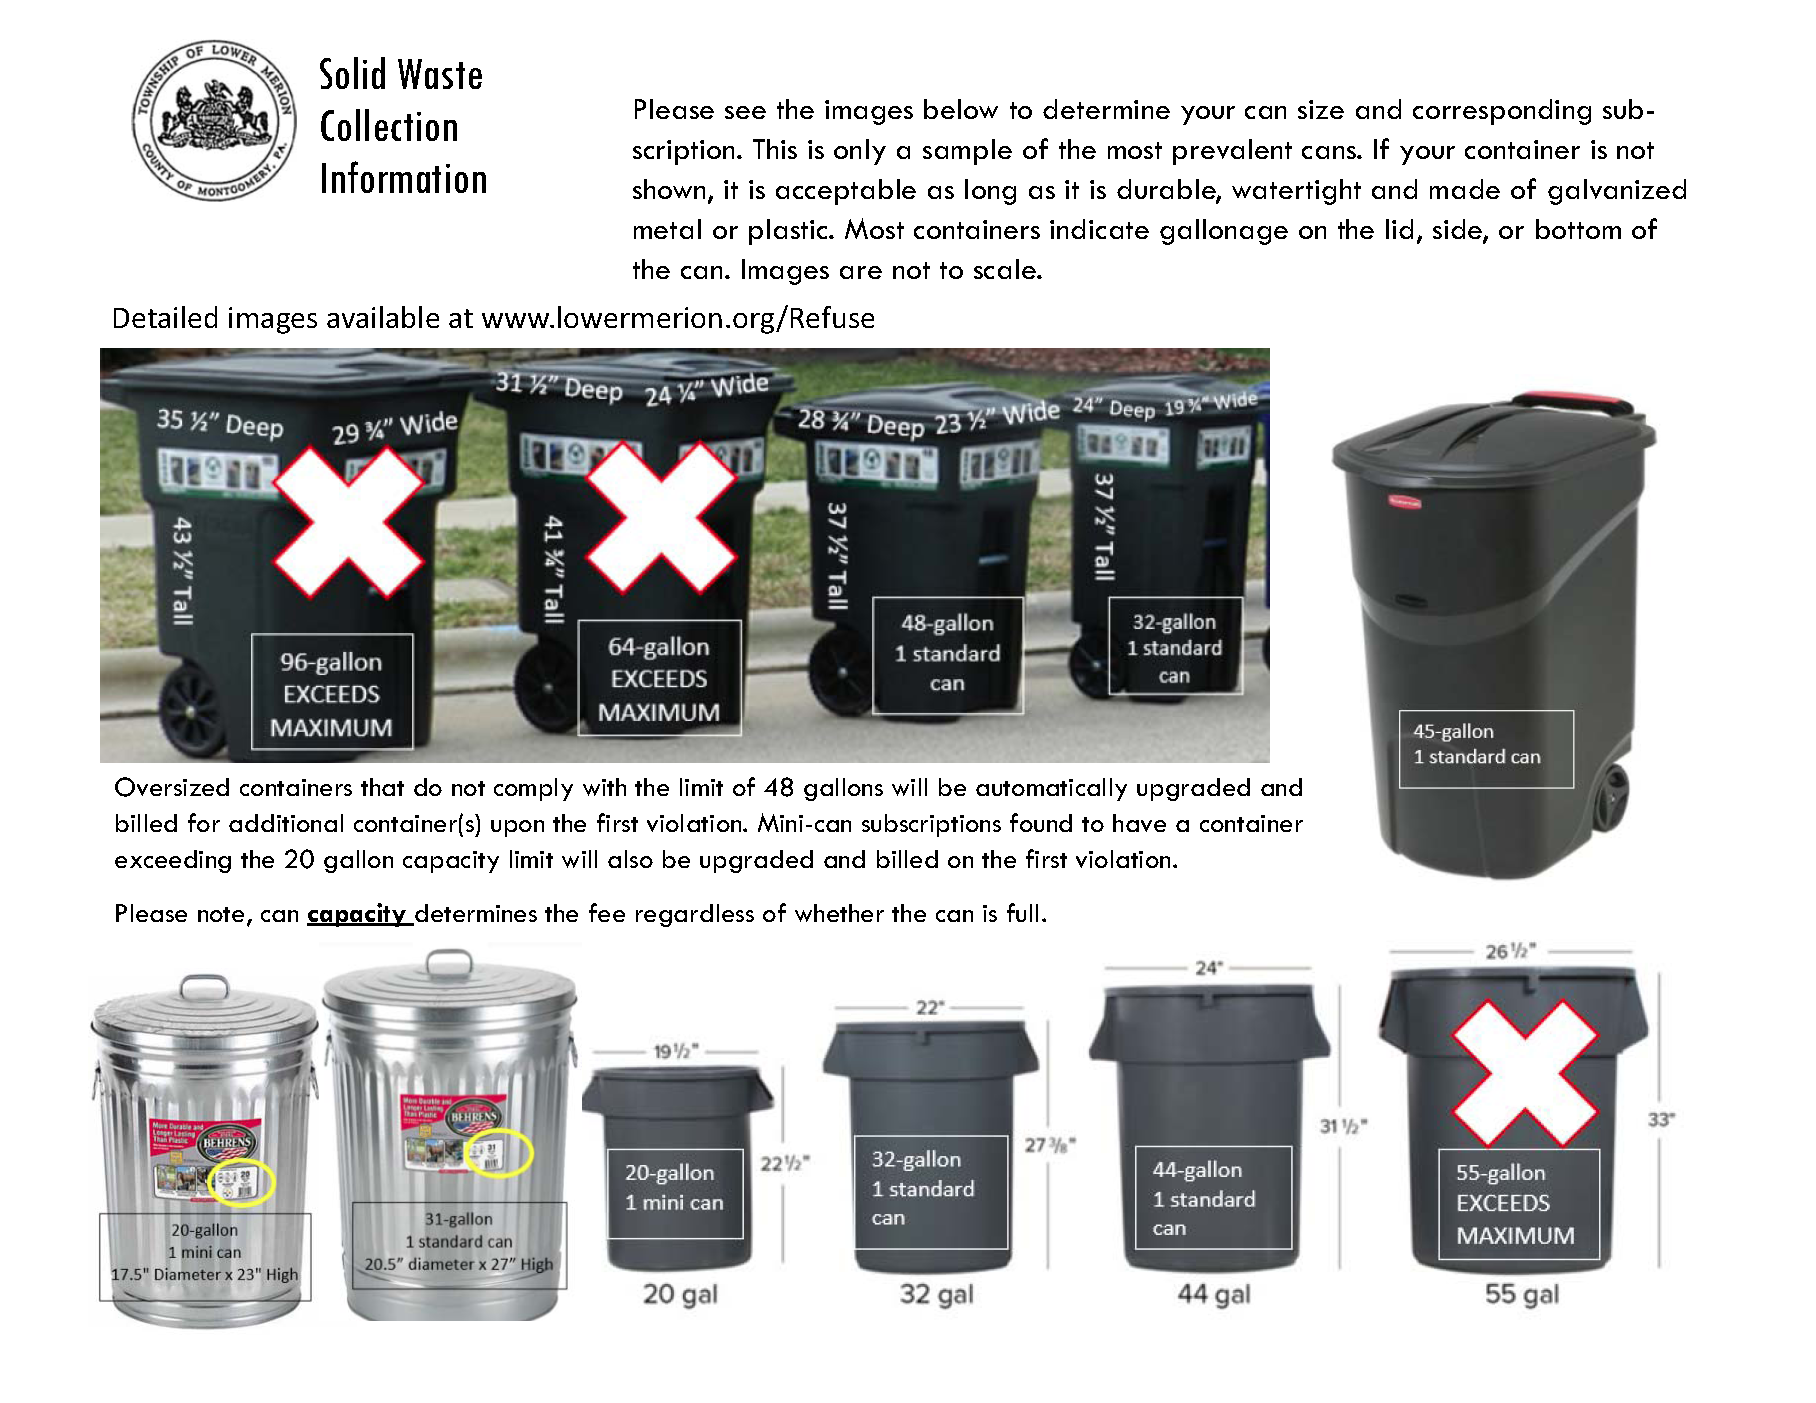 Images of representative Trash containers